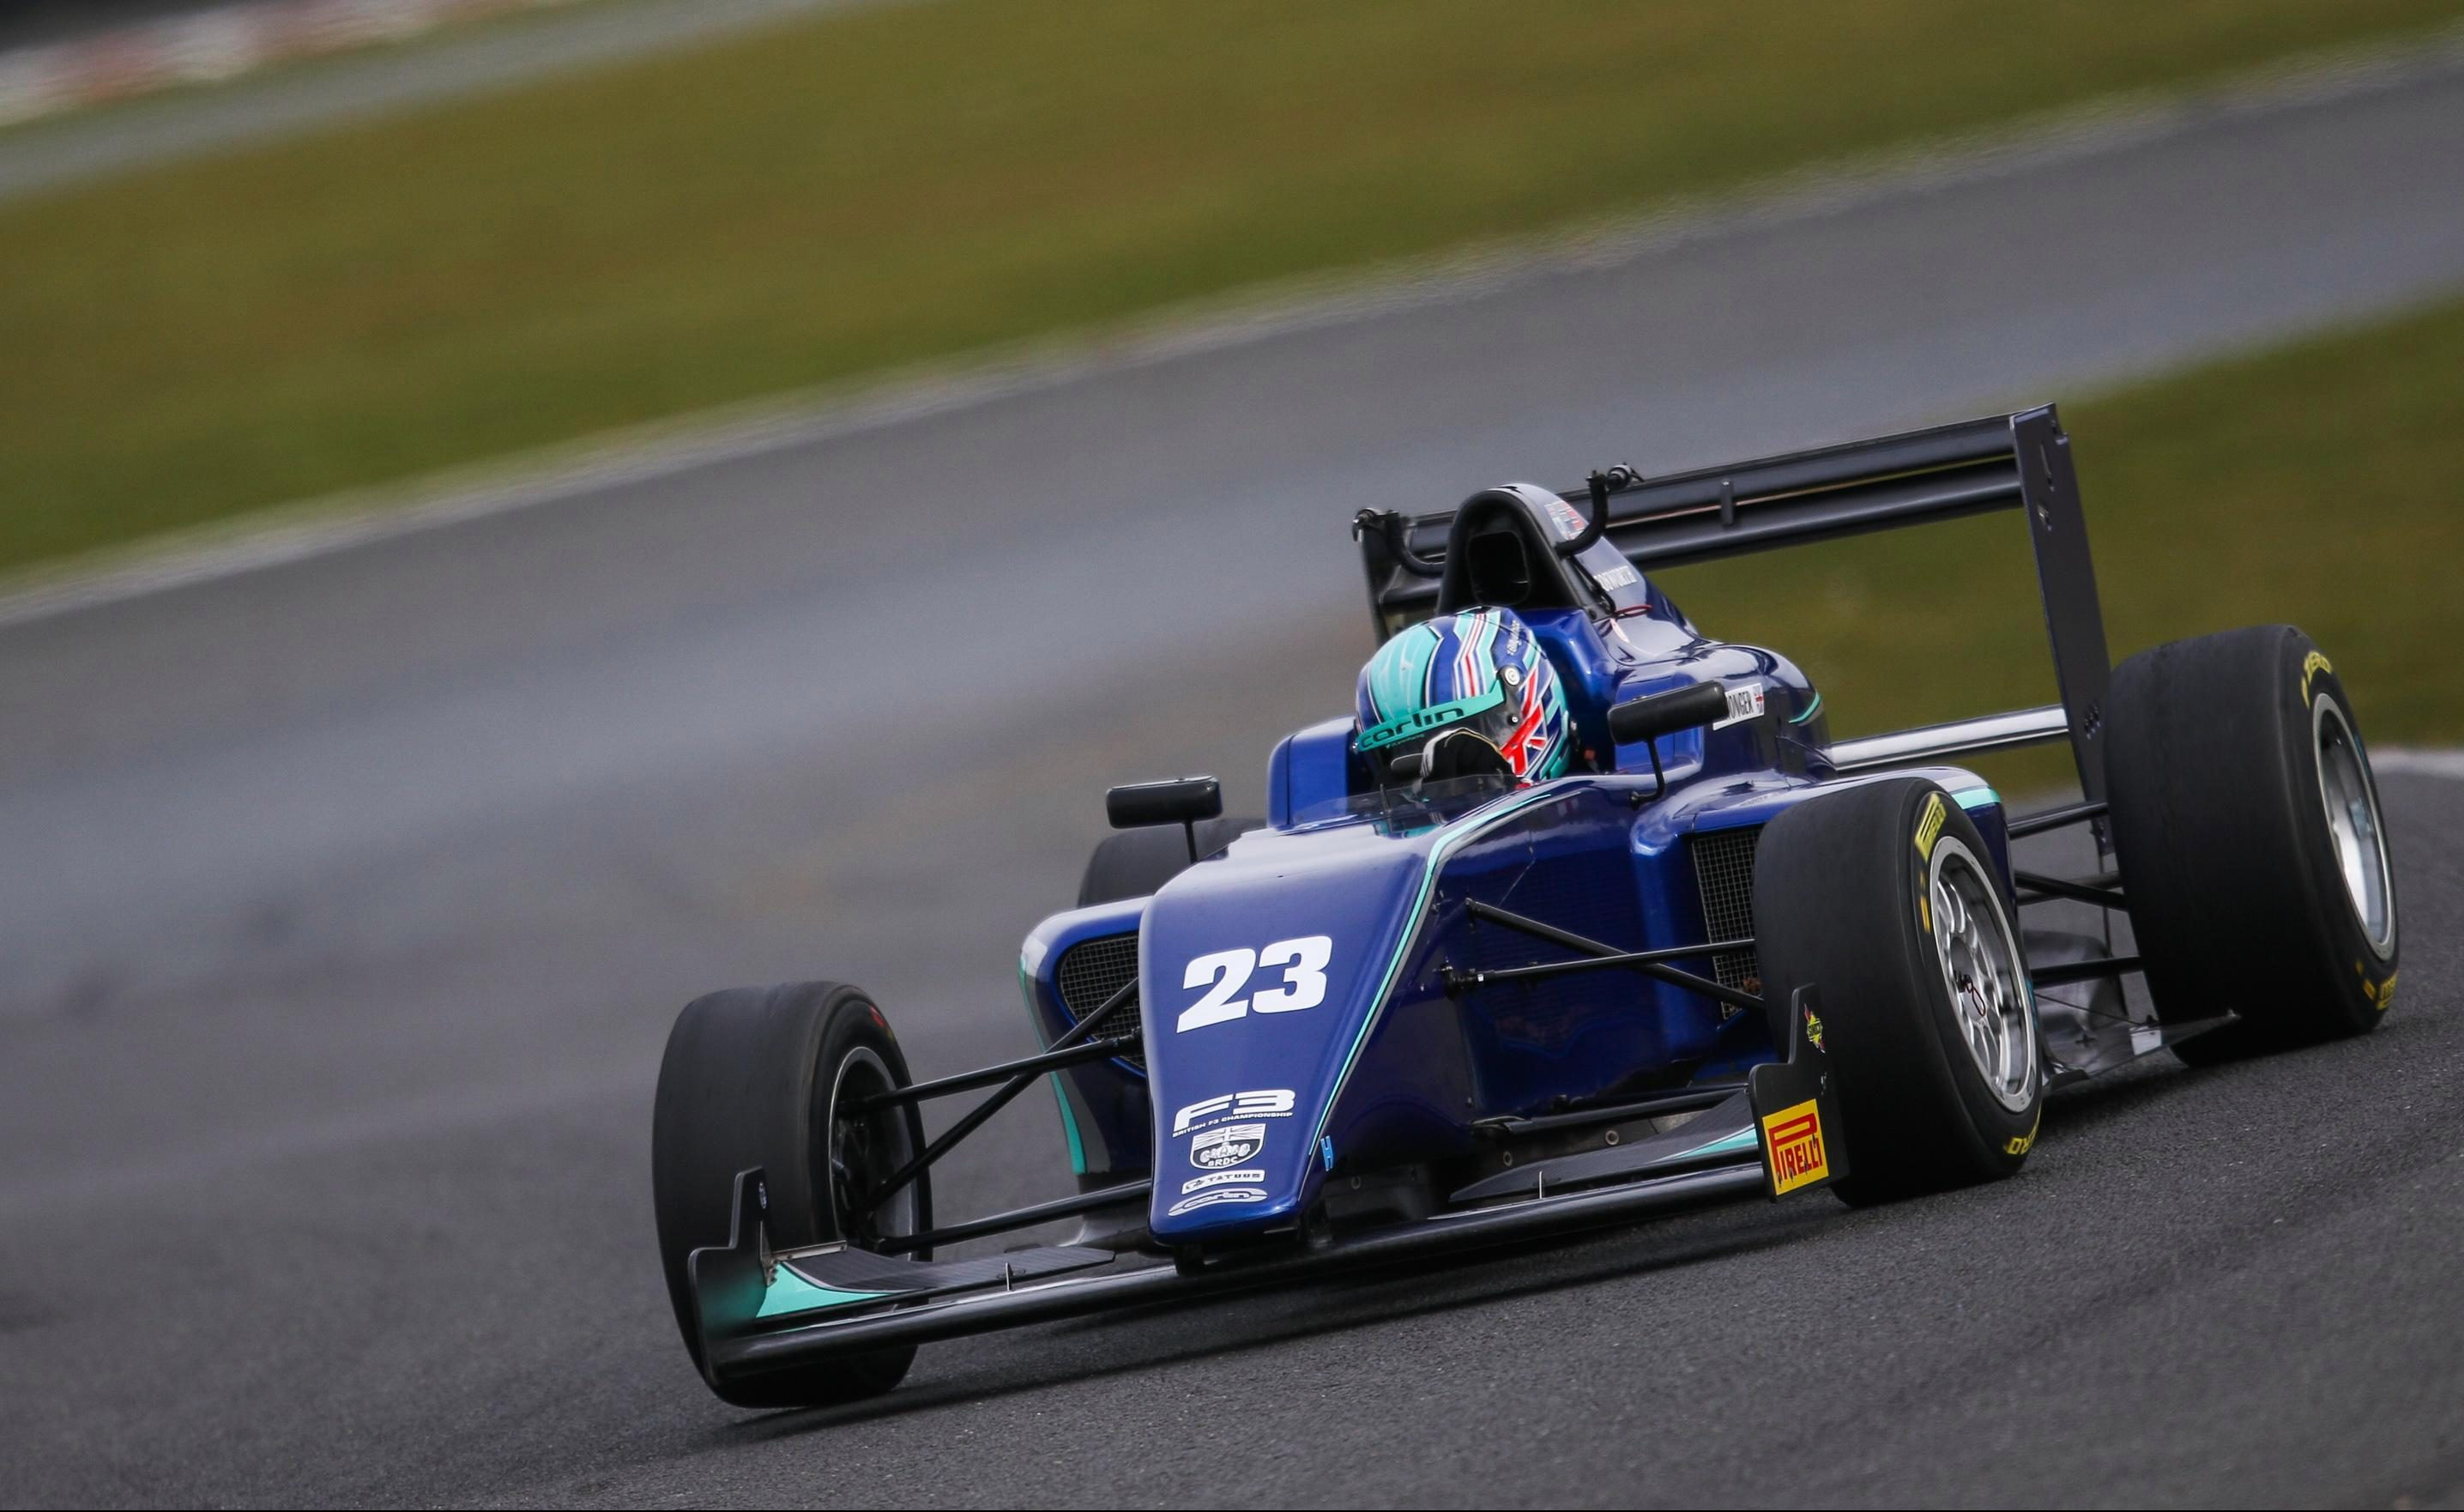 Surrey racer Billy Monger was fifth in qualifying but soon moved up to third place